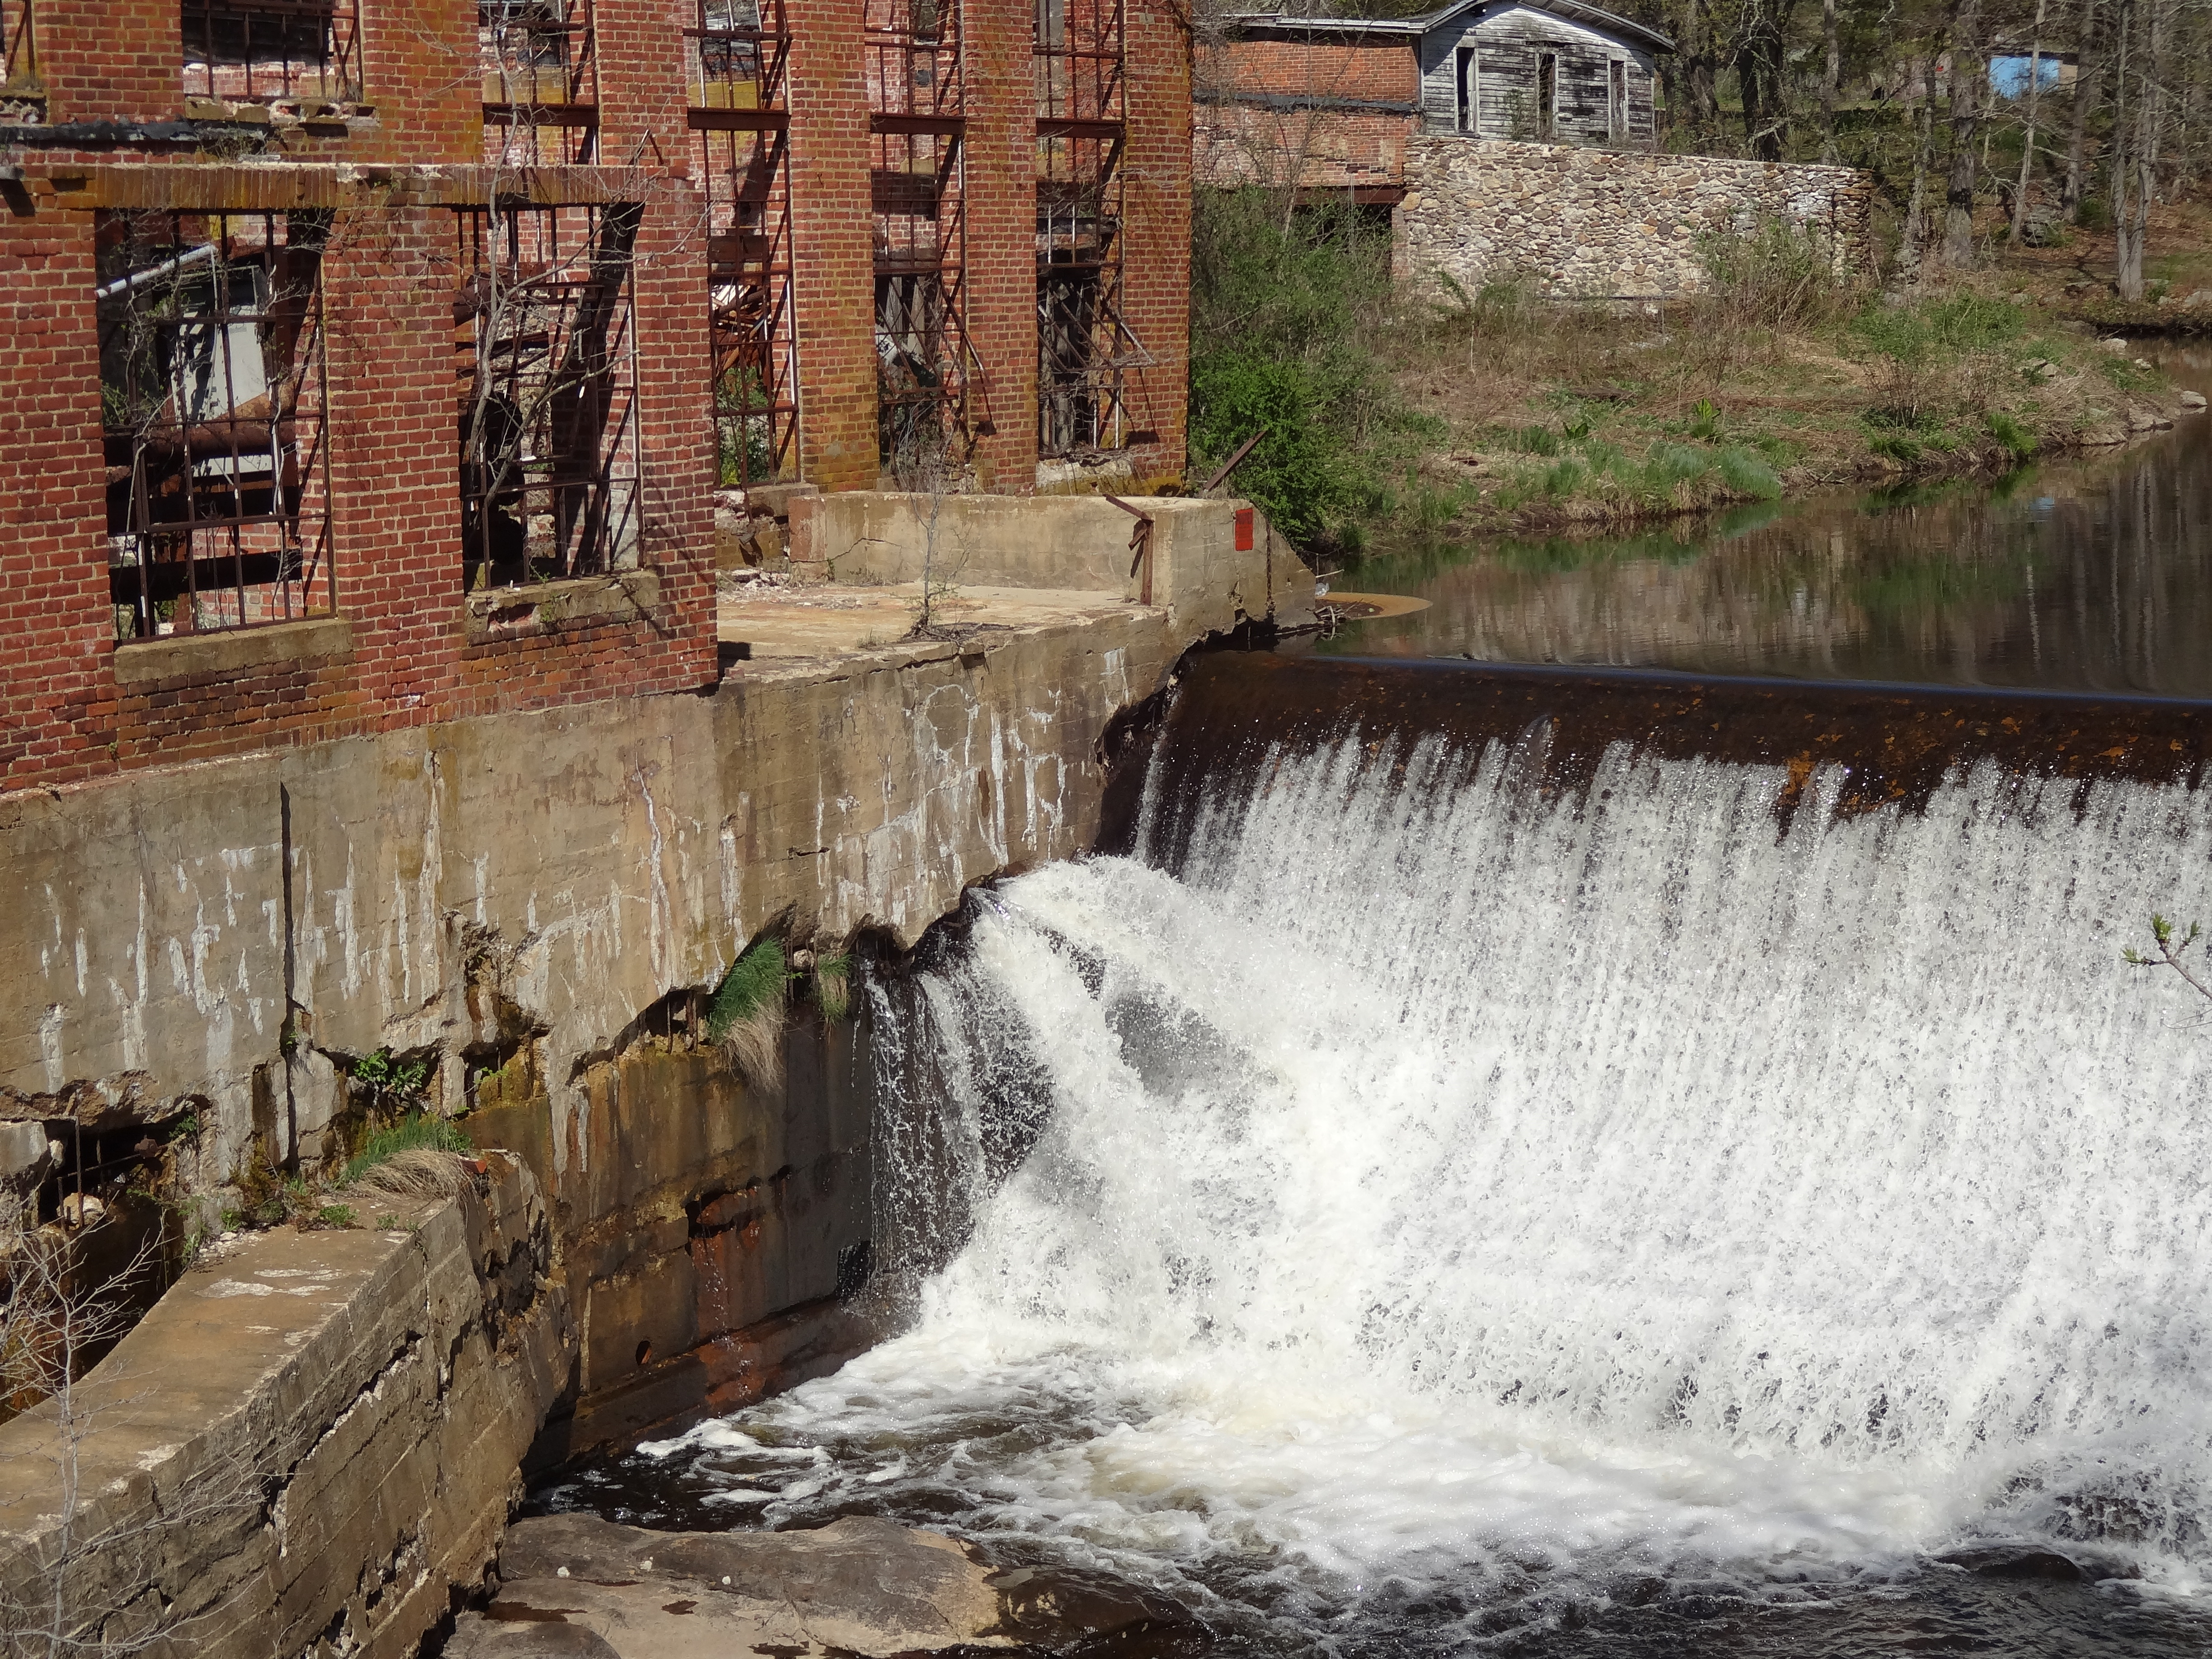 Water surges from huge gaps in the cracking base of the Norton Paper Mill in Colchester, Conn. Once the paper mill, dam and empty mill house (in the far distance) are removed -  visitors will enjoy access to a newly established, town-owned public park. Credit: Lia McLaughlin/USFWS